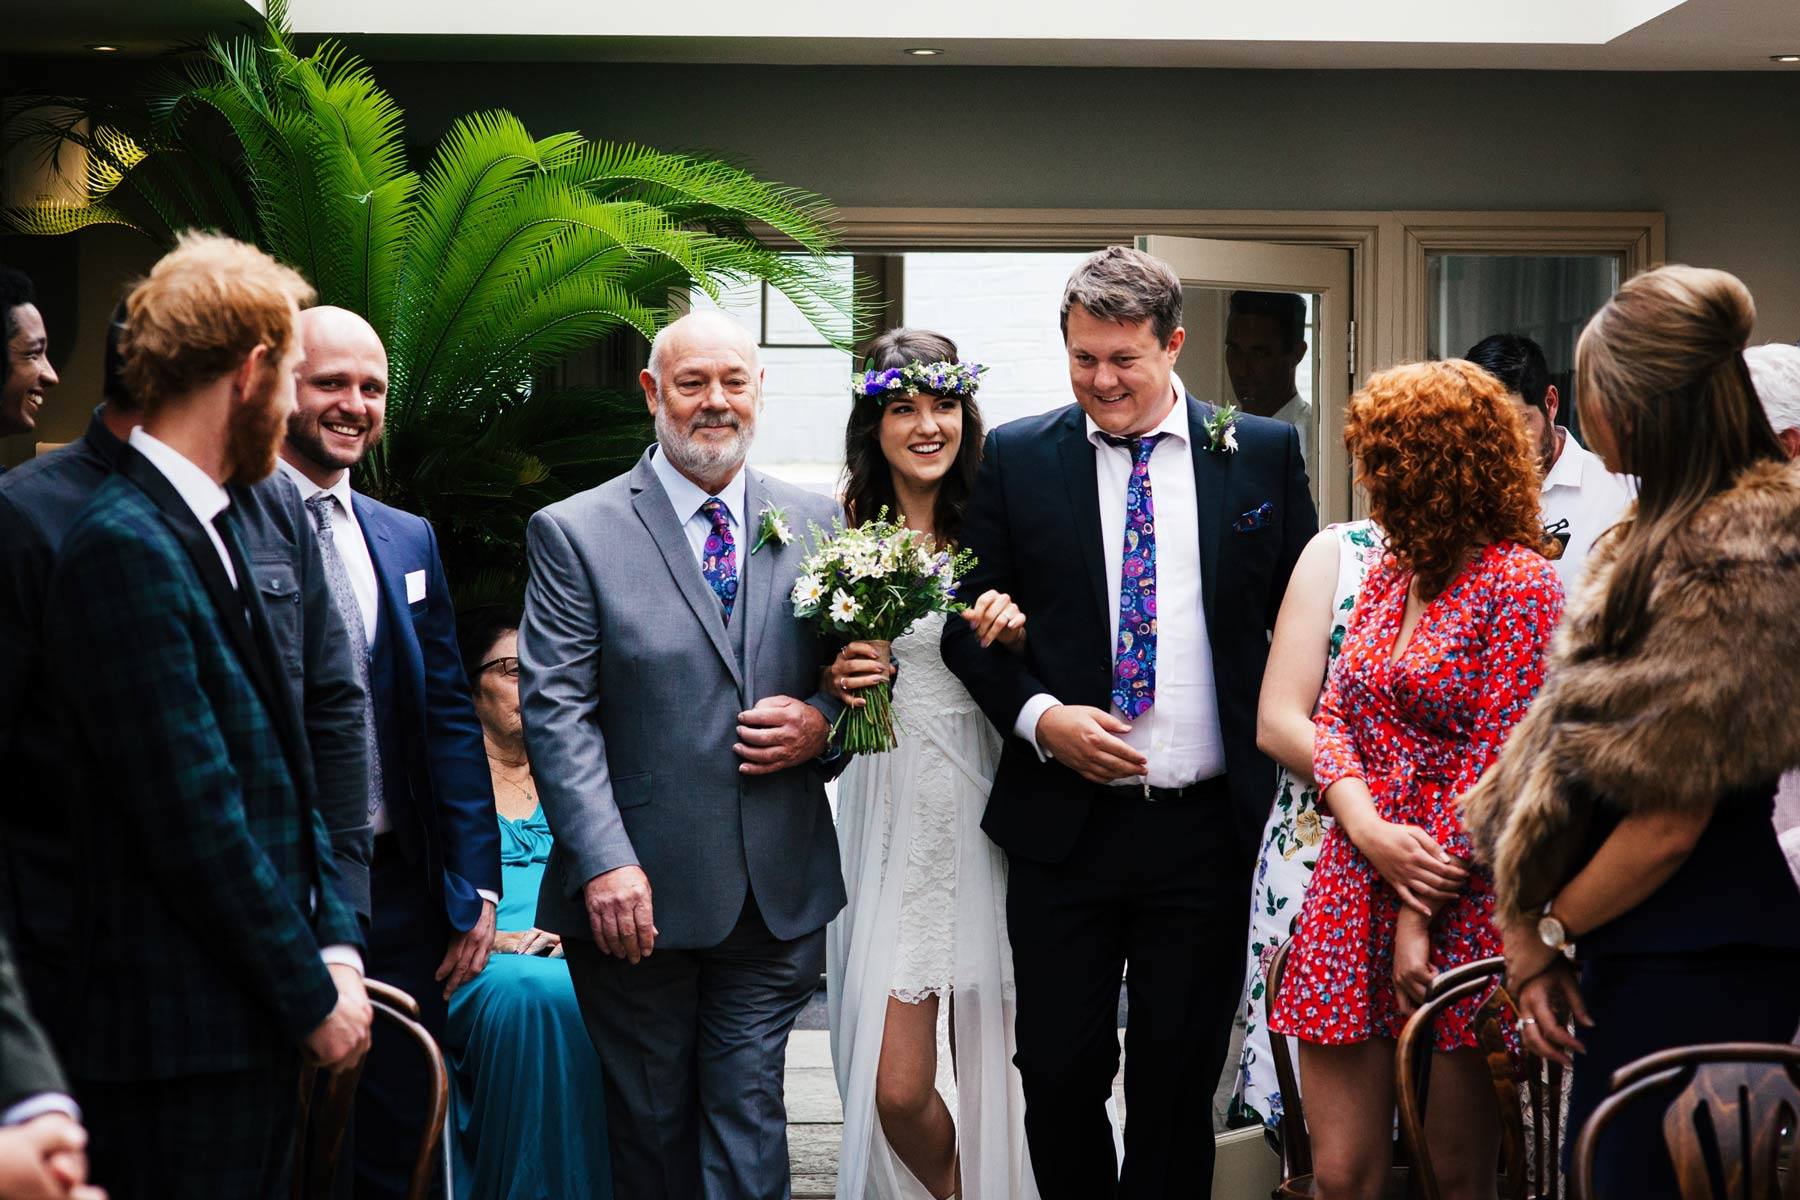 The George Inn Longbridge Deverill Wedding